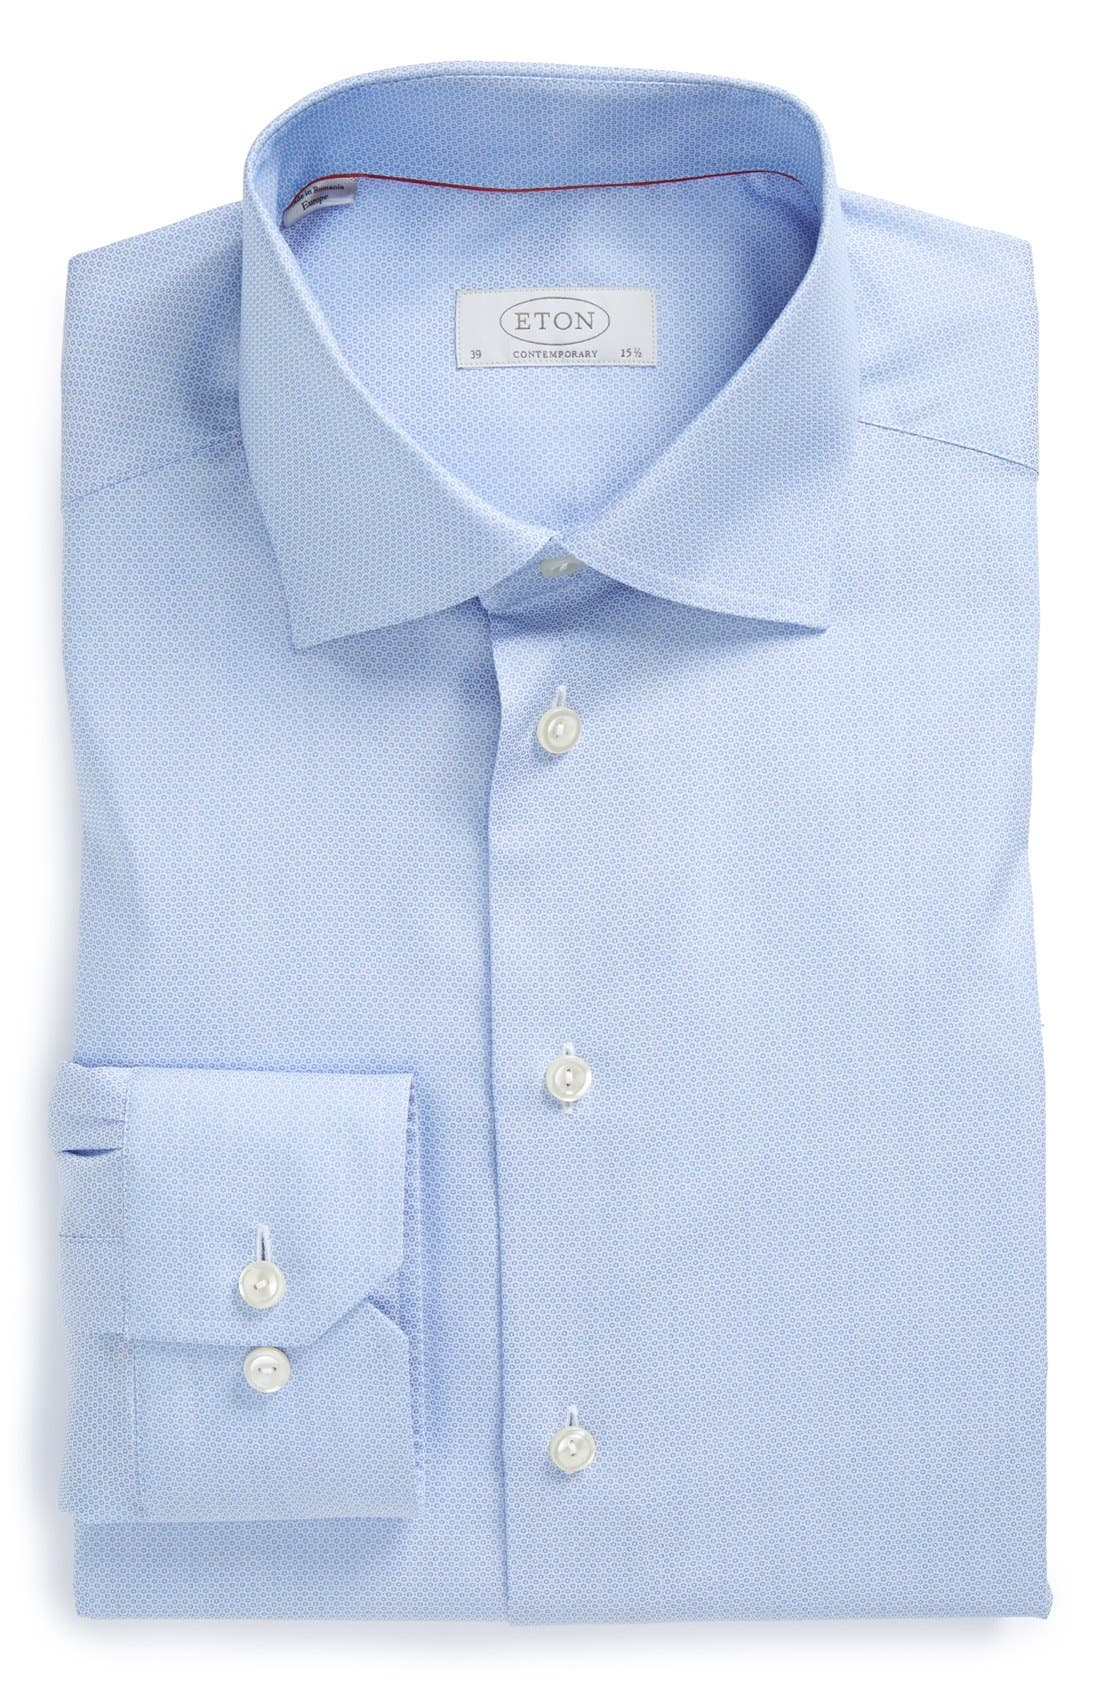 Contemporary Fit Textured Solid Dress Shirt,                         Main,                         color, BLUE